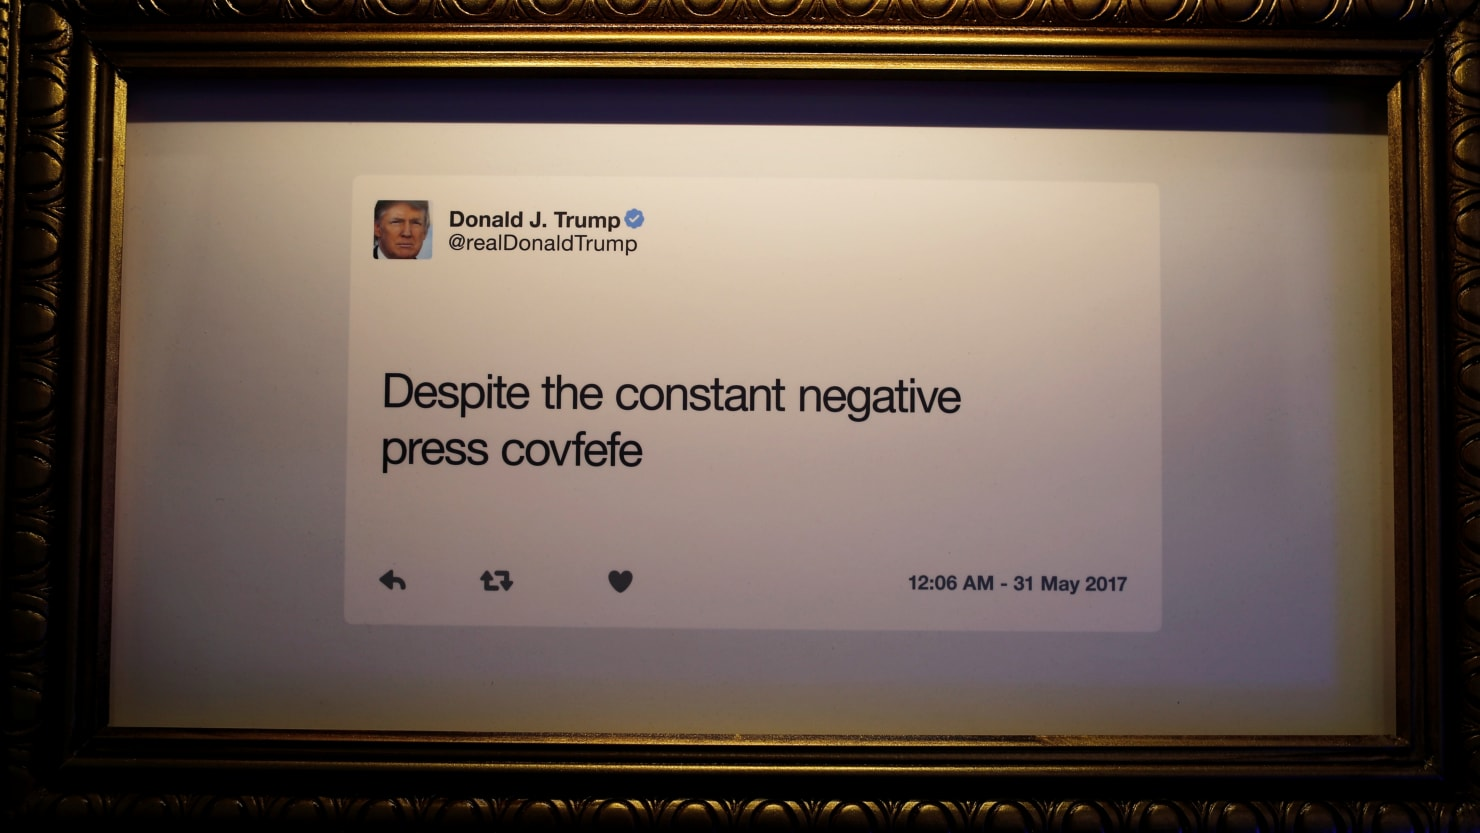 Trump, of All People, Attacks Someone's Spelling on Twitter